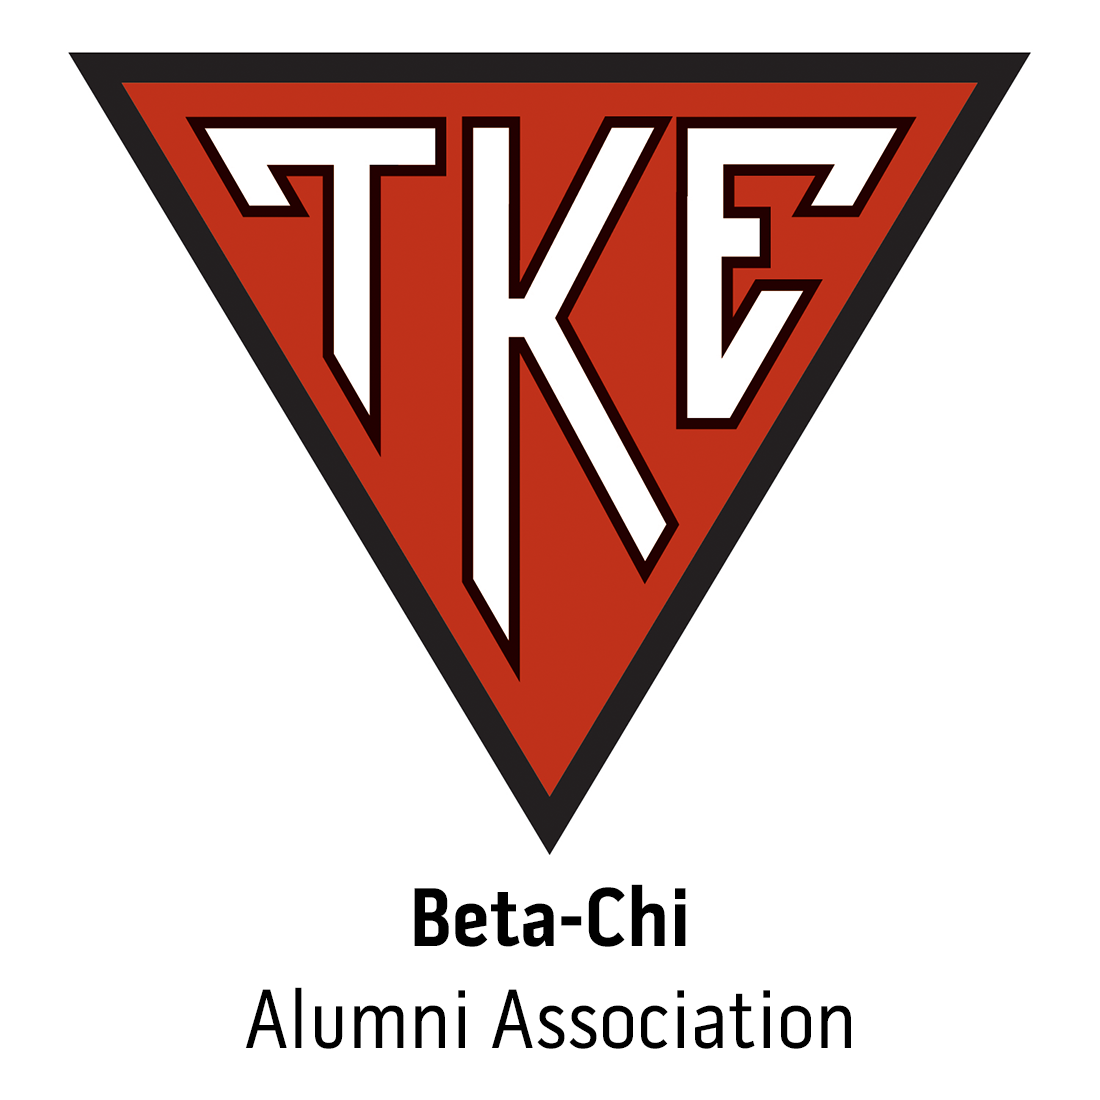 Beta-Chi Alumni Association at Southern Illinois Univ Carbondale